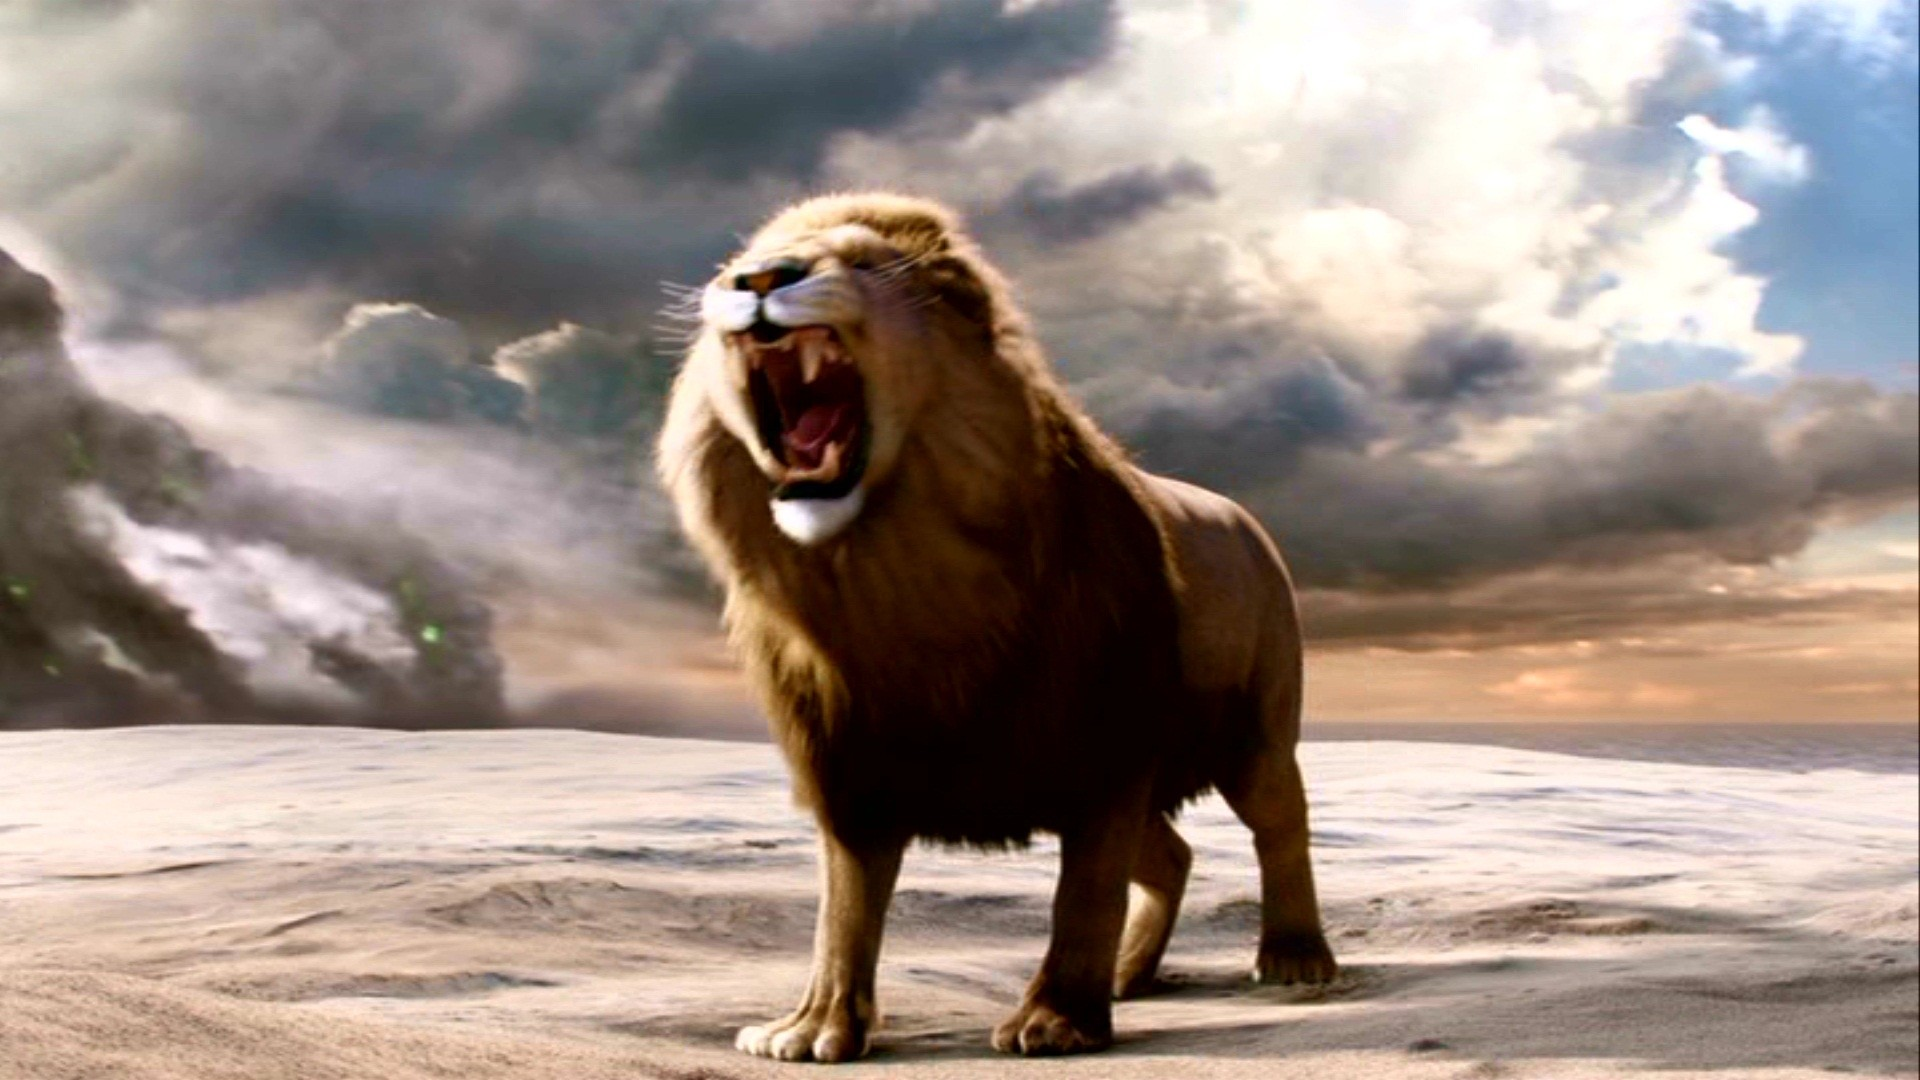 Res: 1920x1080, Filme - The Chronicles of Narnia: The Voyage of the Dawn Treader Wallpaper